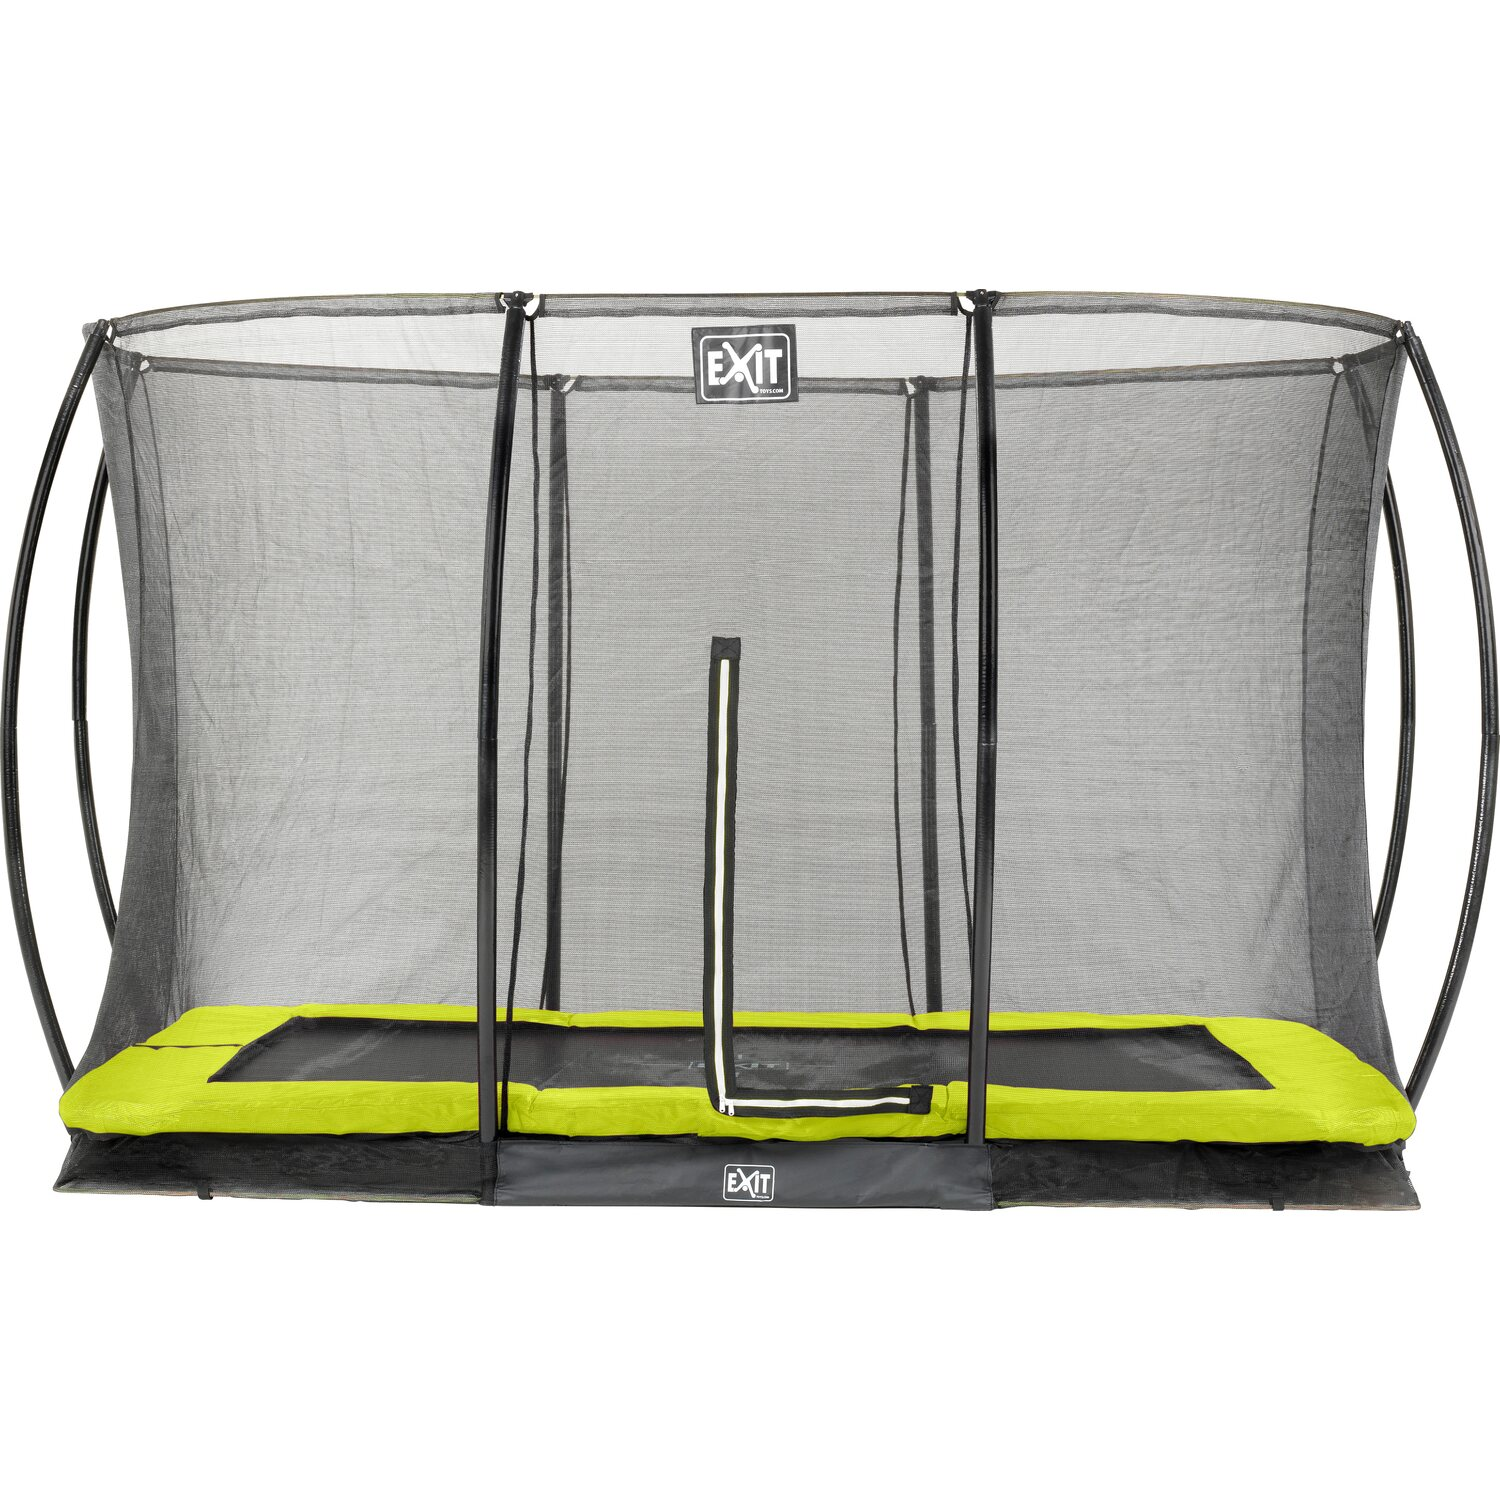 Exit Bodentrampolin Silhouette Eckig 214 x 305 ...